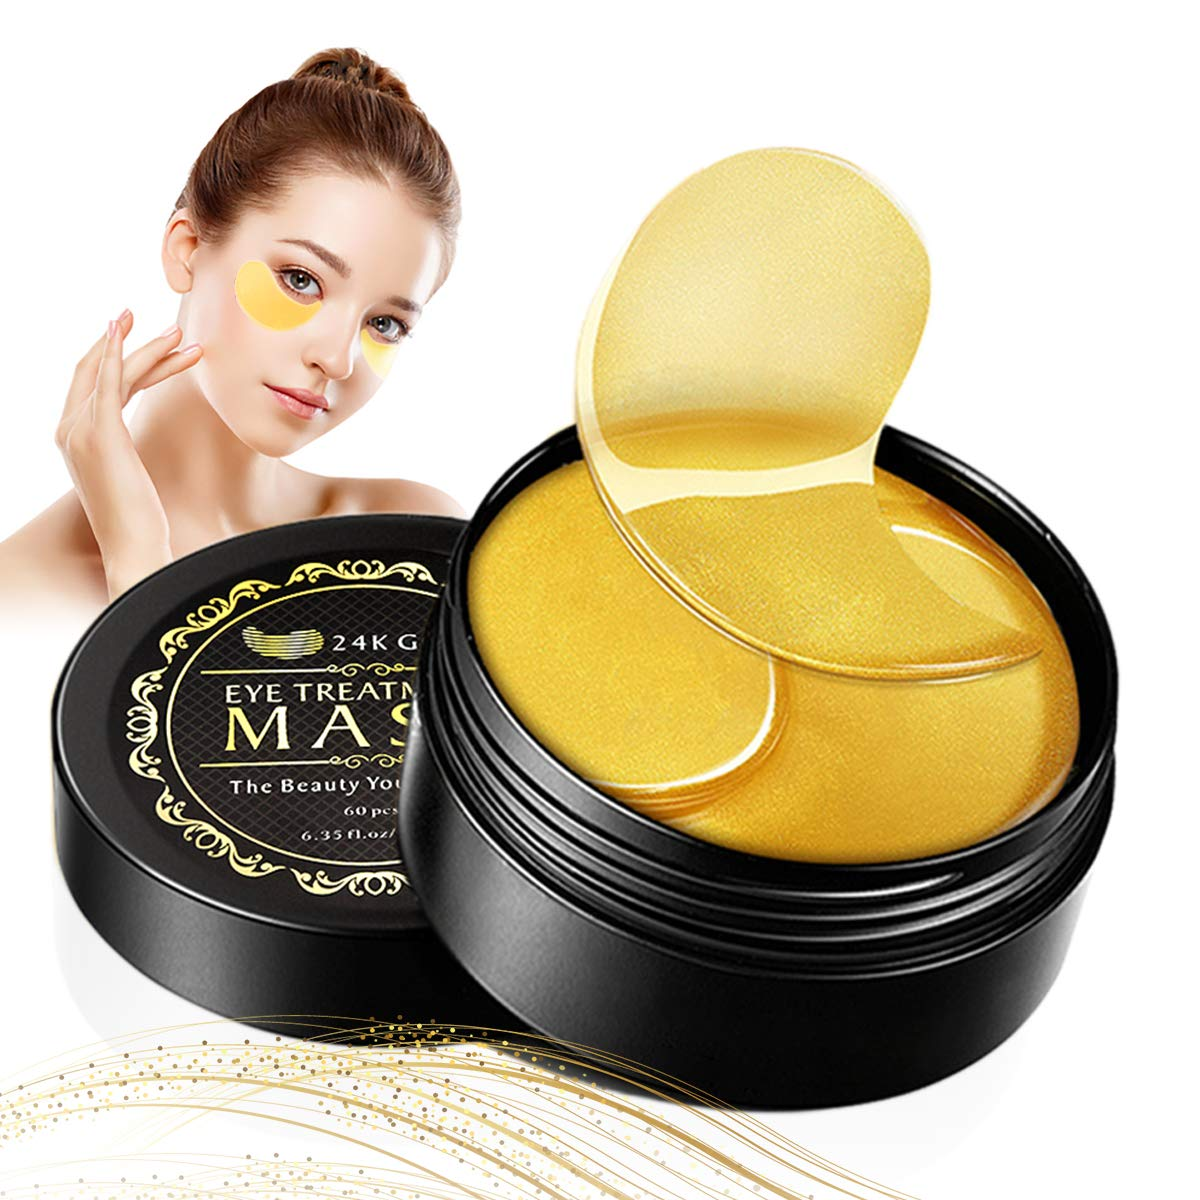 Under Eye Mask 24K Gold Eye Mask Reduces Wrinkles & Puffiness Lighten Dark Circles Moisturize Anti Aging Under Eye Patches 30 Pairs by SWLKG